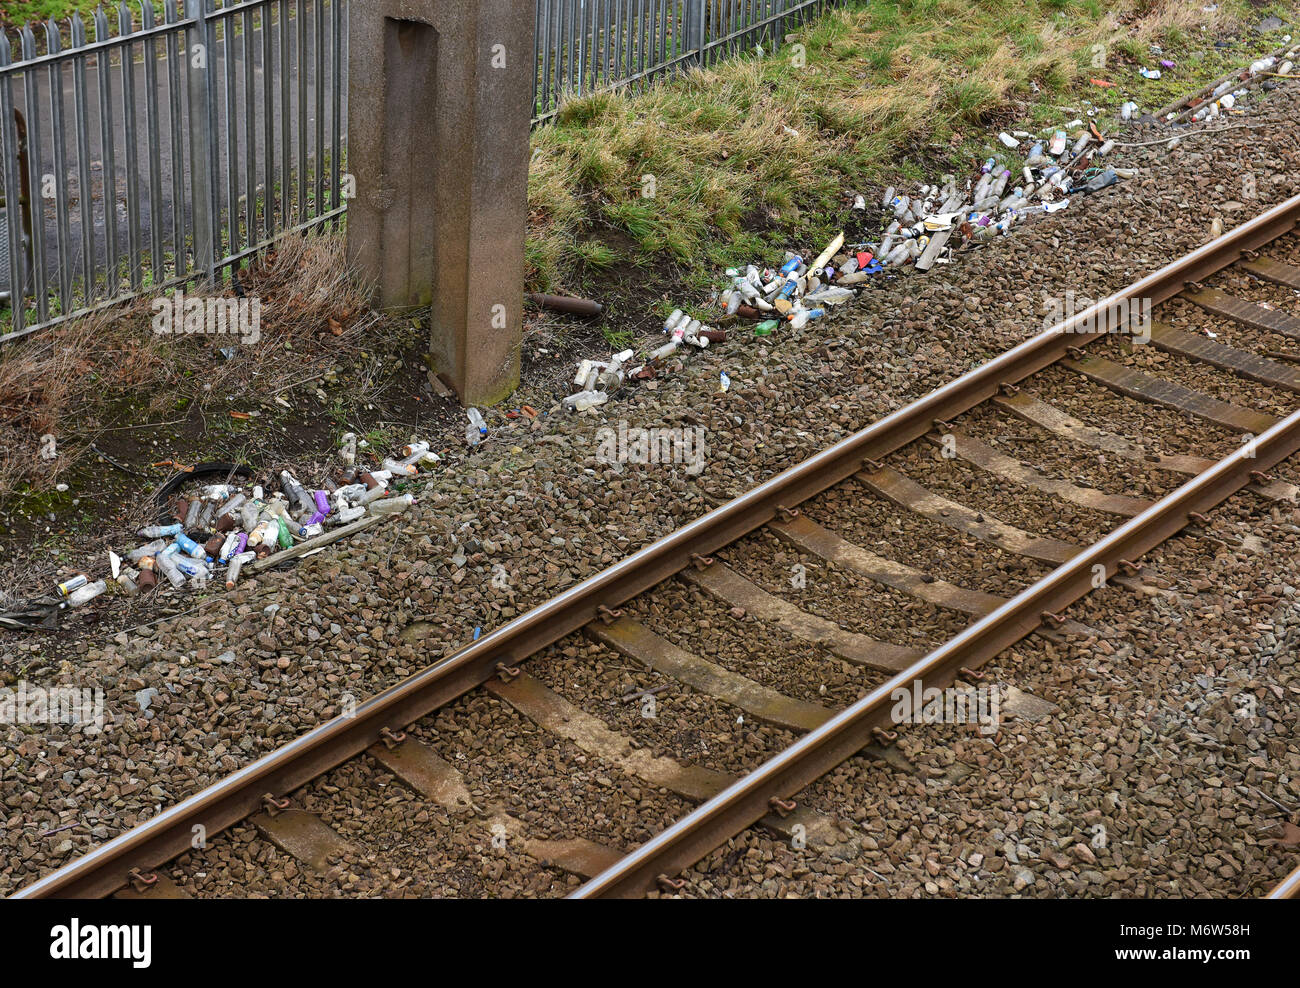 Railway track littered with plastic bottles and drinks cans thrown from trains by passengers England, Britain, Uk - Stock Image